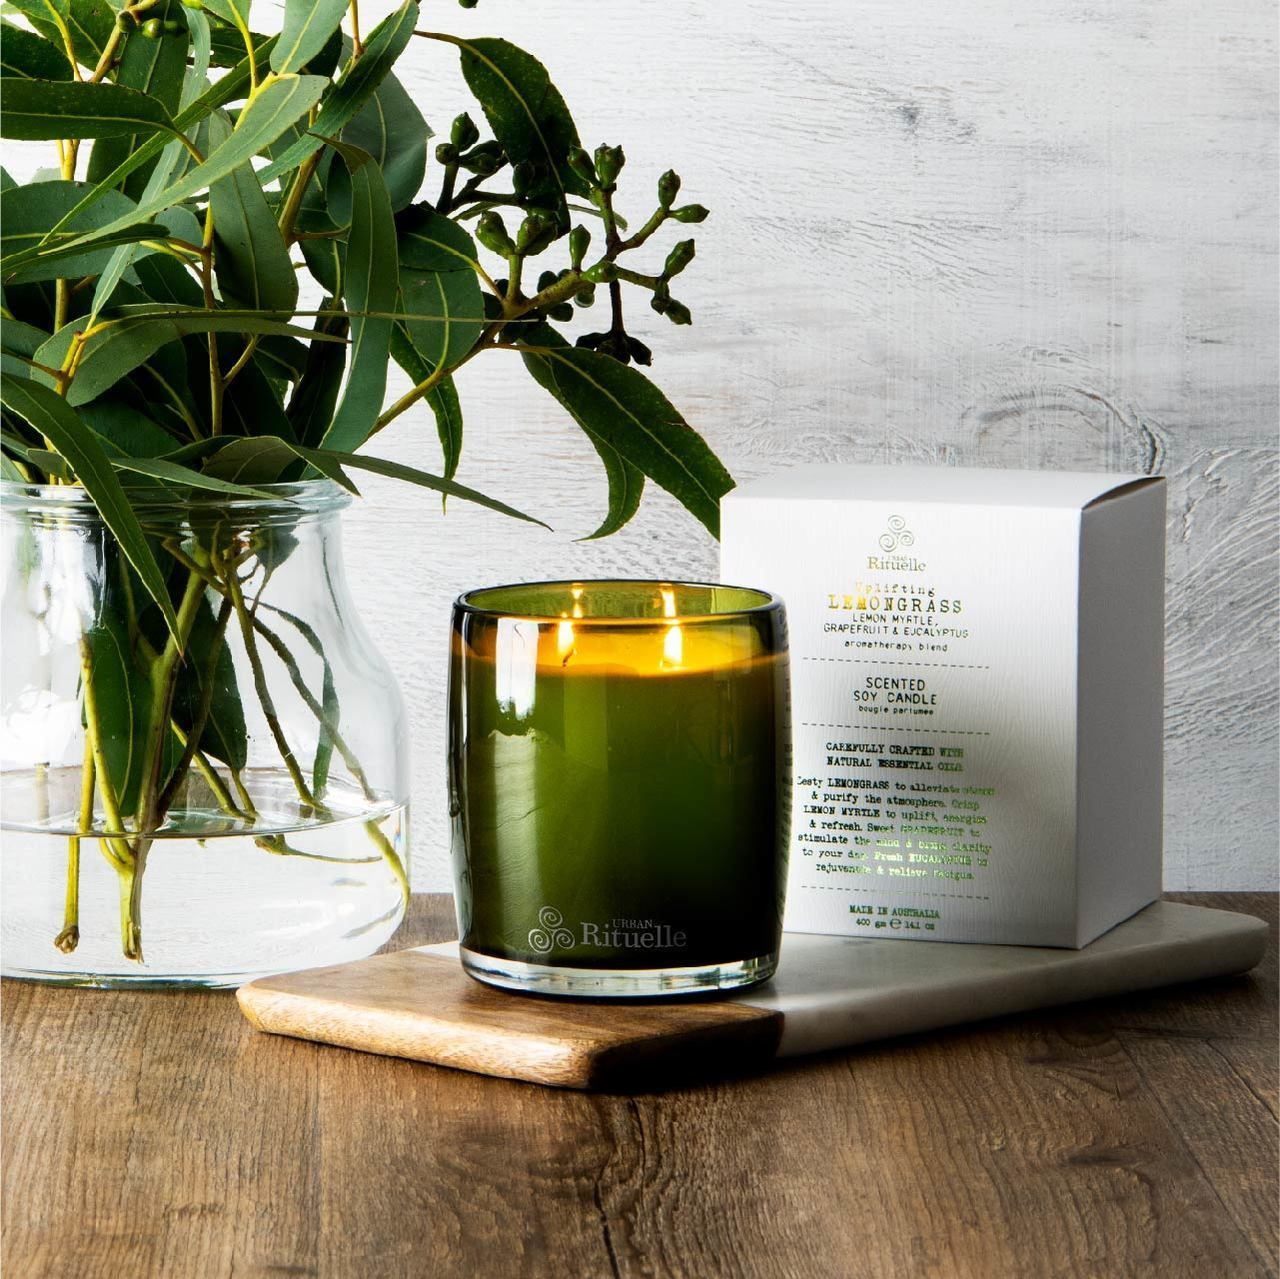 Urban Rituelle UpliftingLemongrass Scented Soy Candle